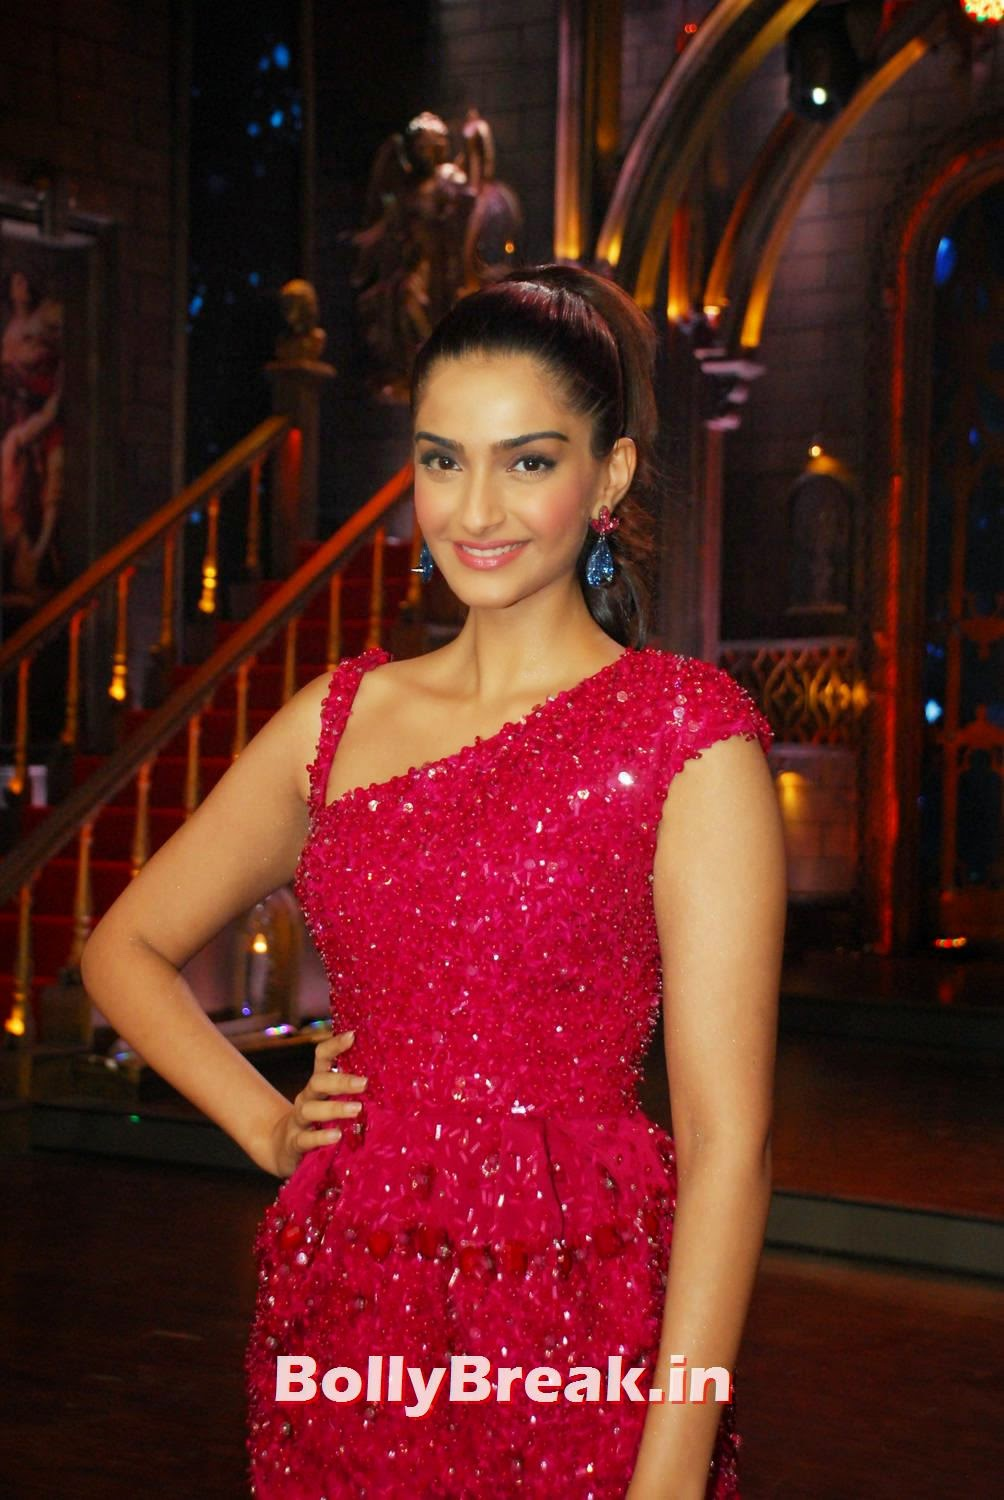 Sonam Kapoor In Red Dress - Hot Images - 11 Pics-6574